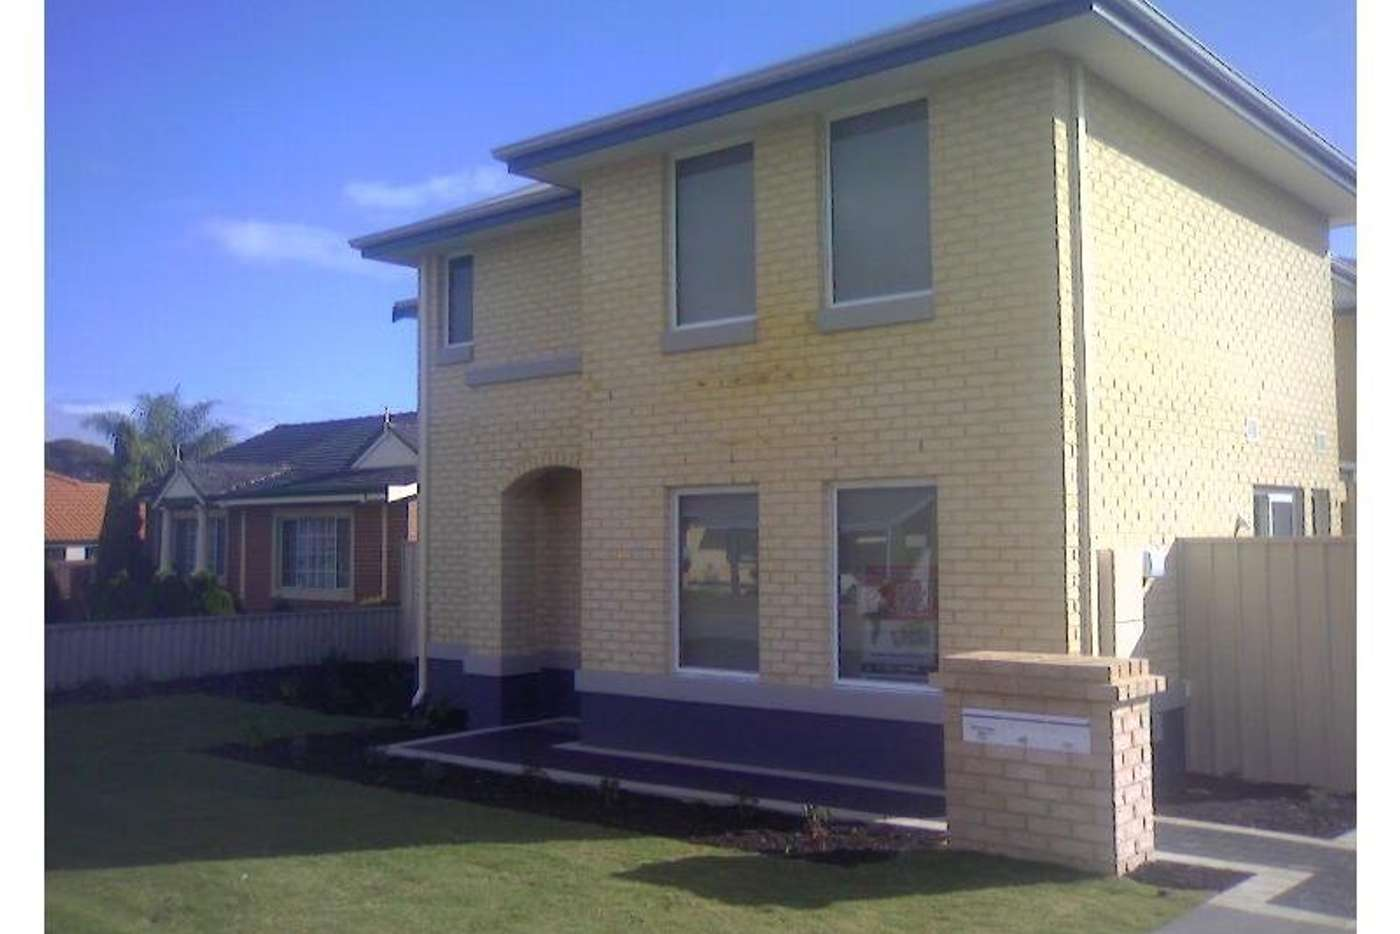 Main view of Homely townhouse listing, 6A Sykes Avenue, Innaloo WA 6018